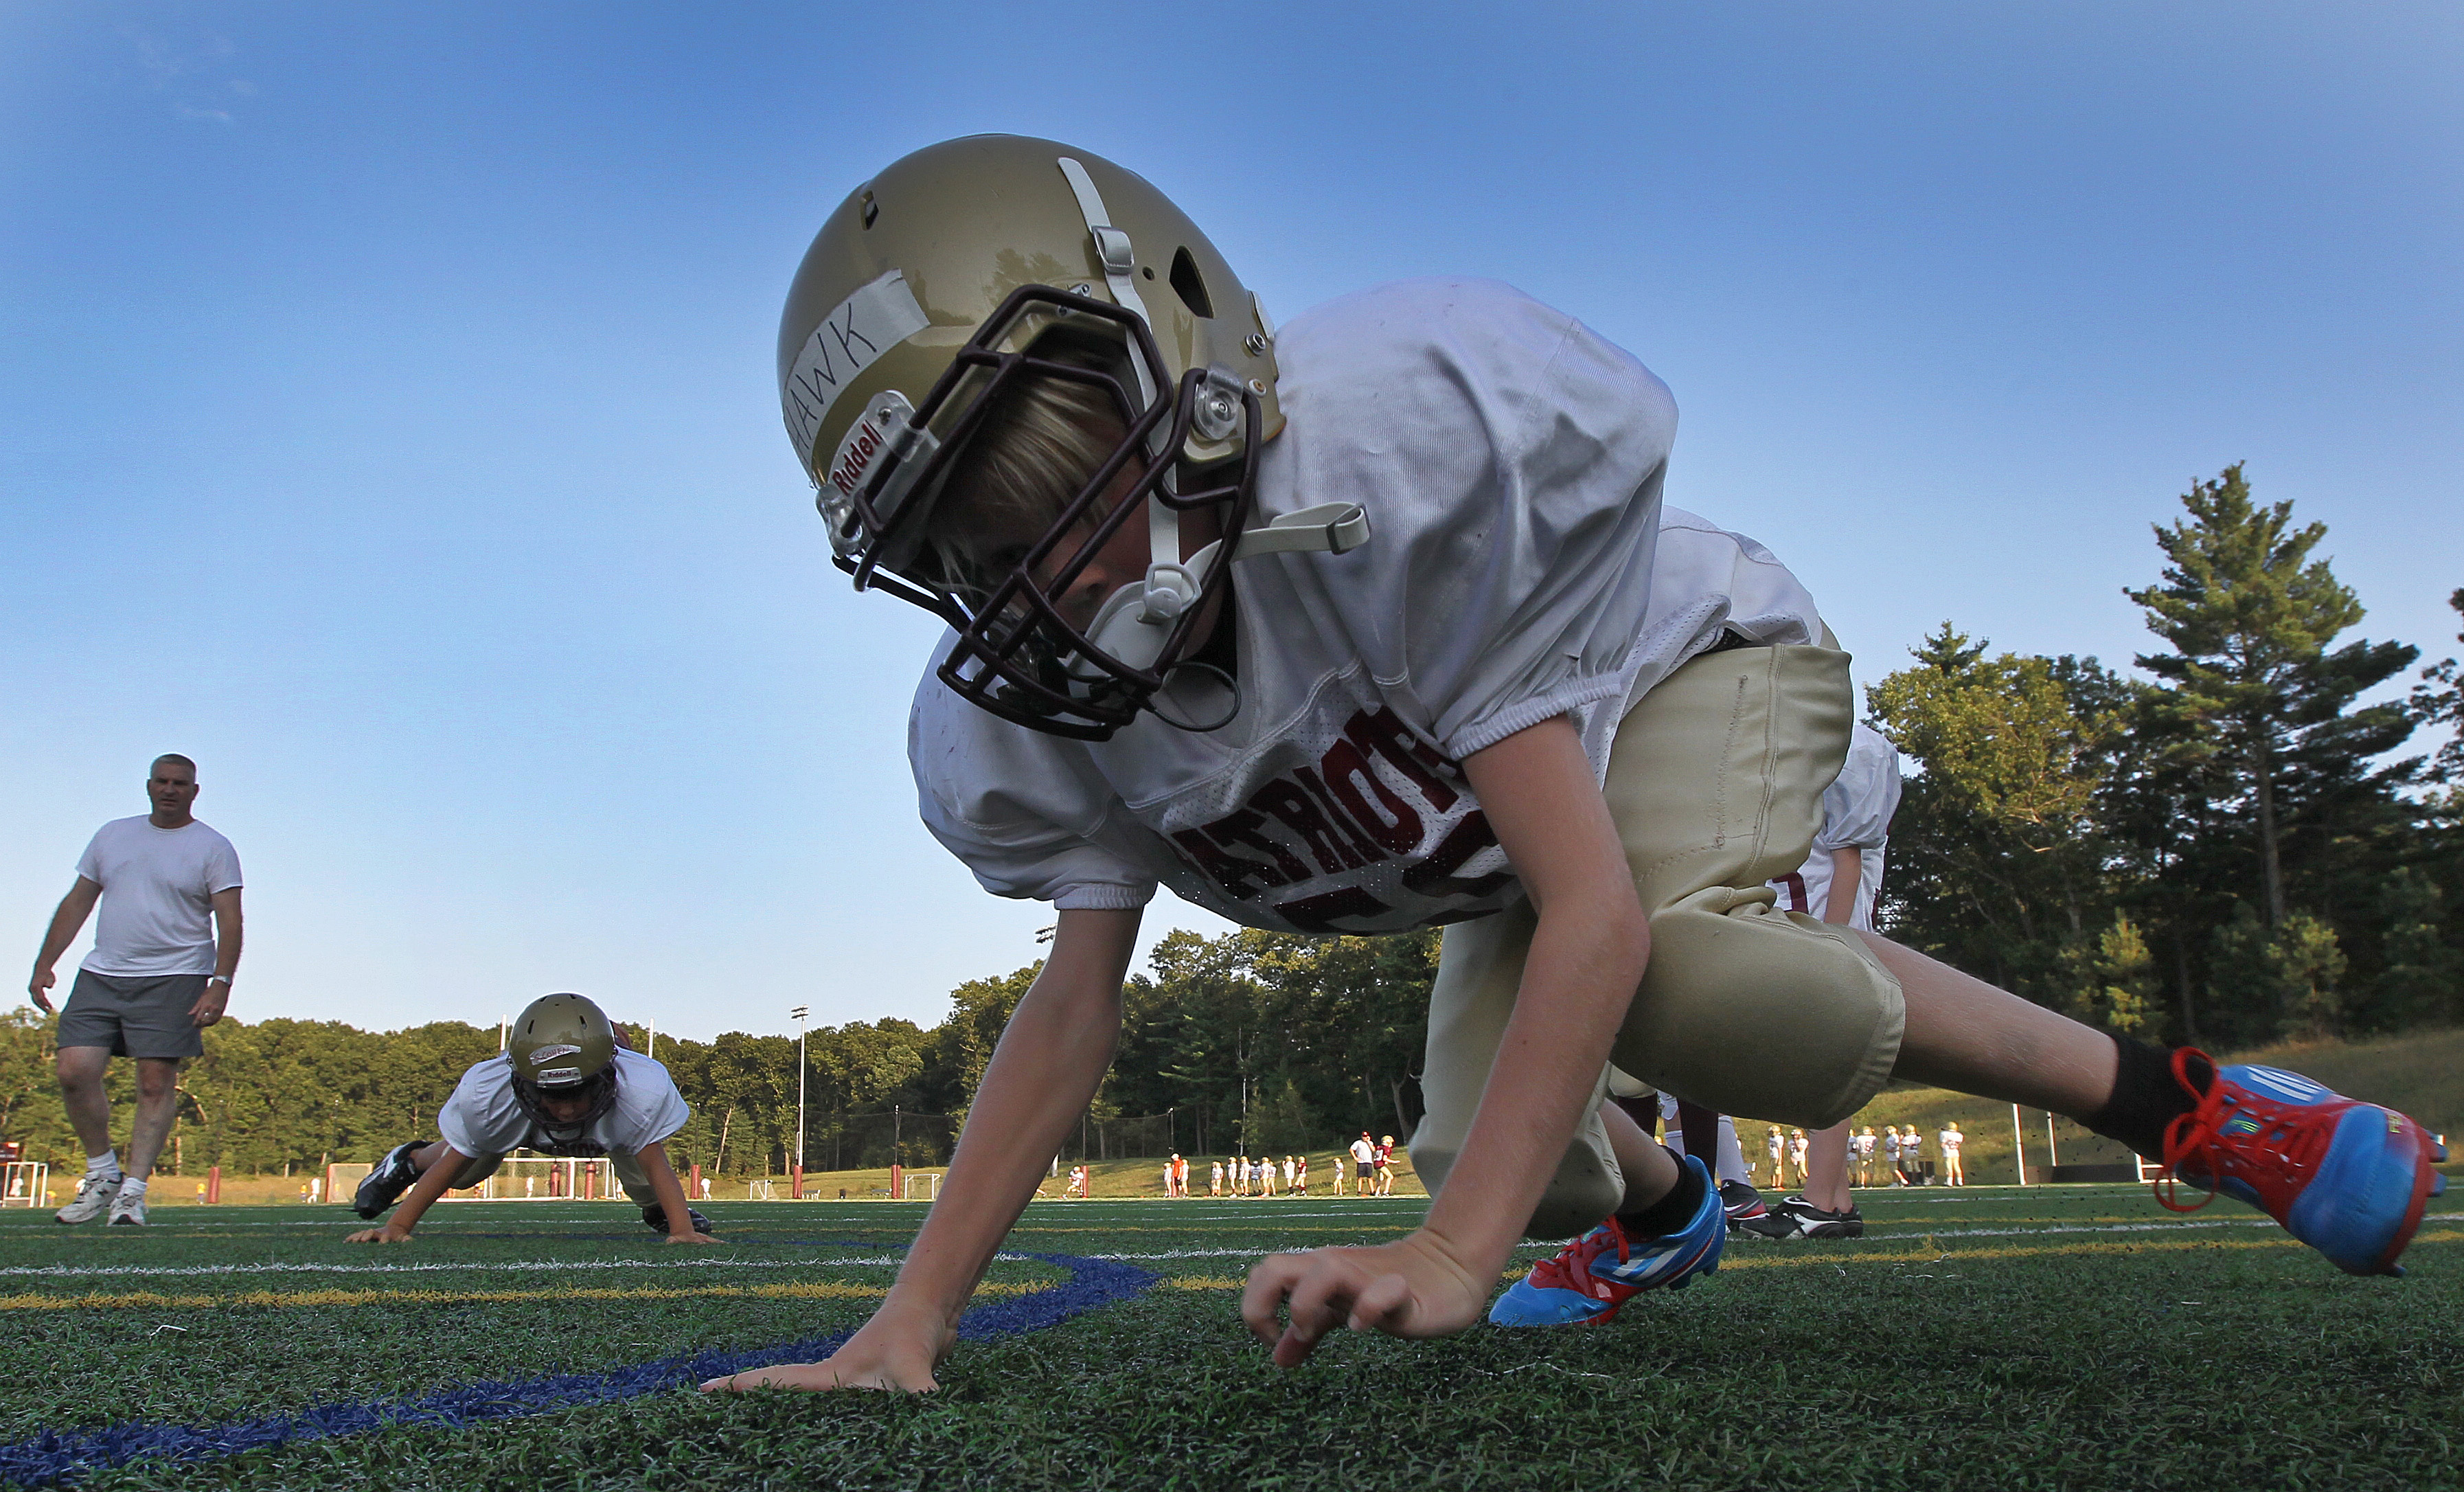 Concord-Carlisle Pop Warner football players go through drills during practice.